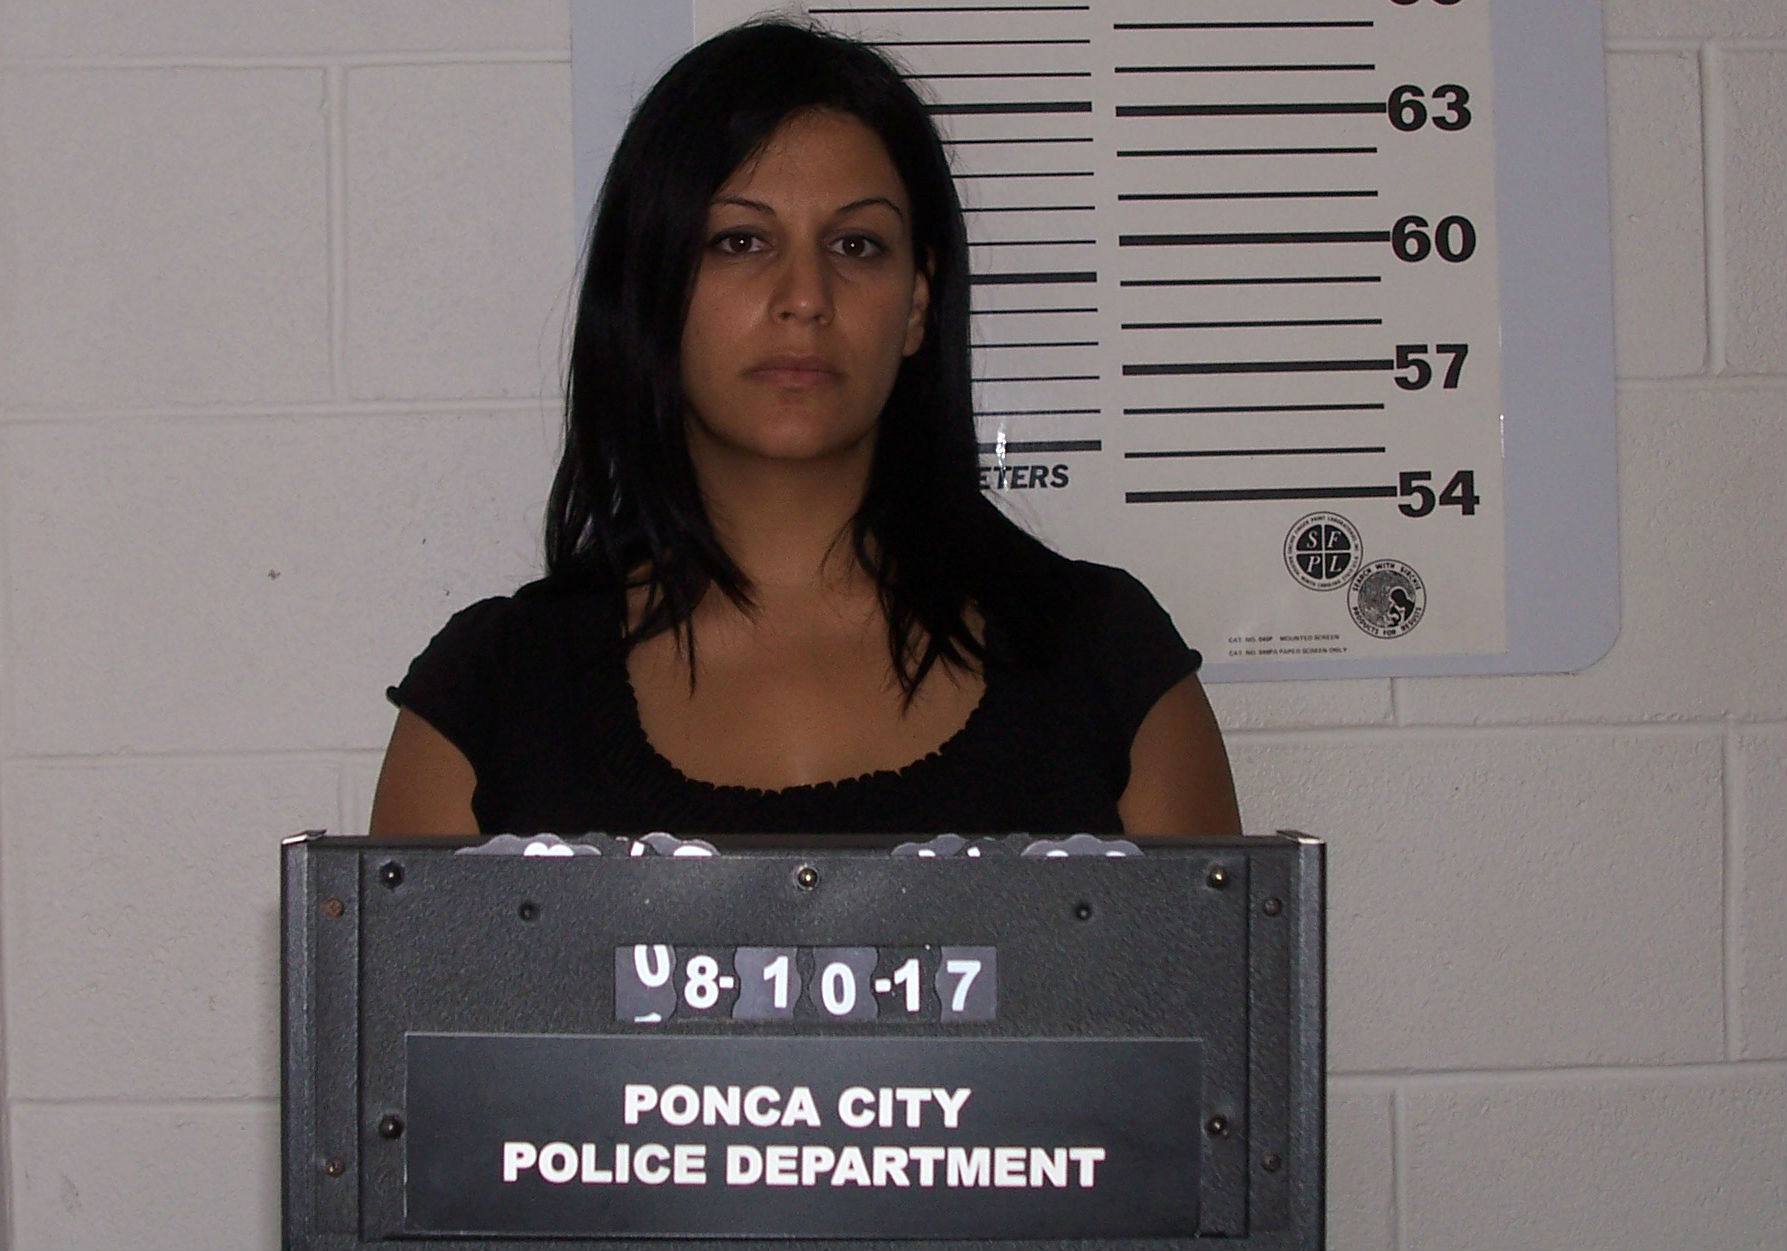 Danielle Layman, 37, was arrested August 10 in Ponca City for obstruction. (Ponca City Police Department)